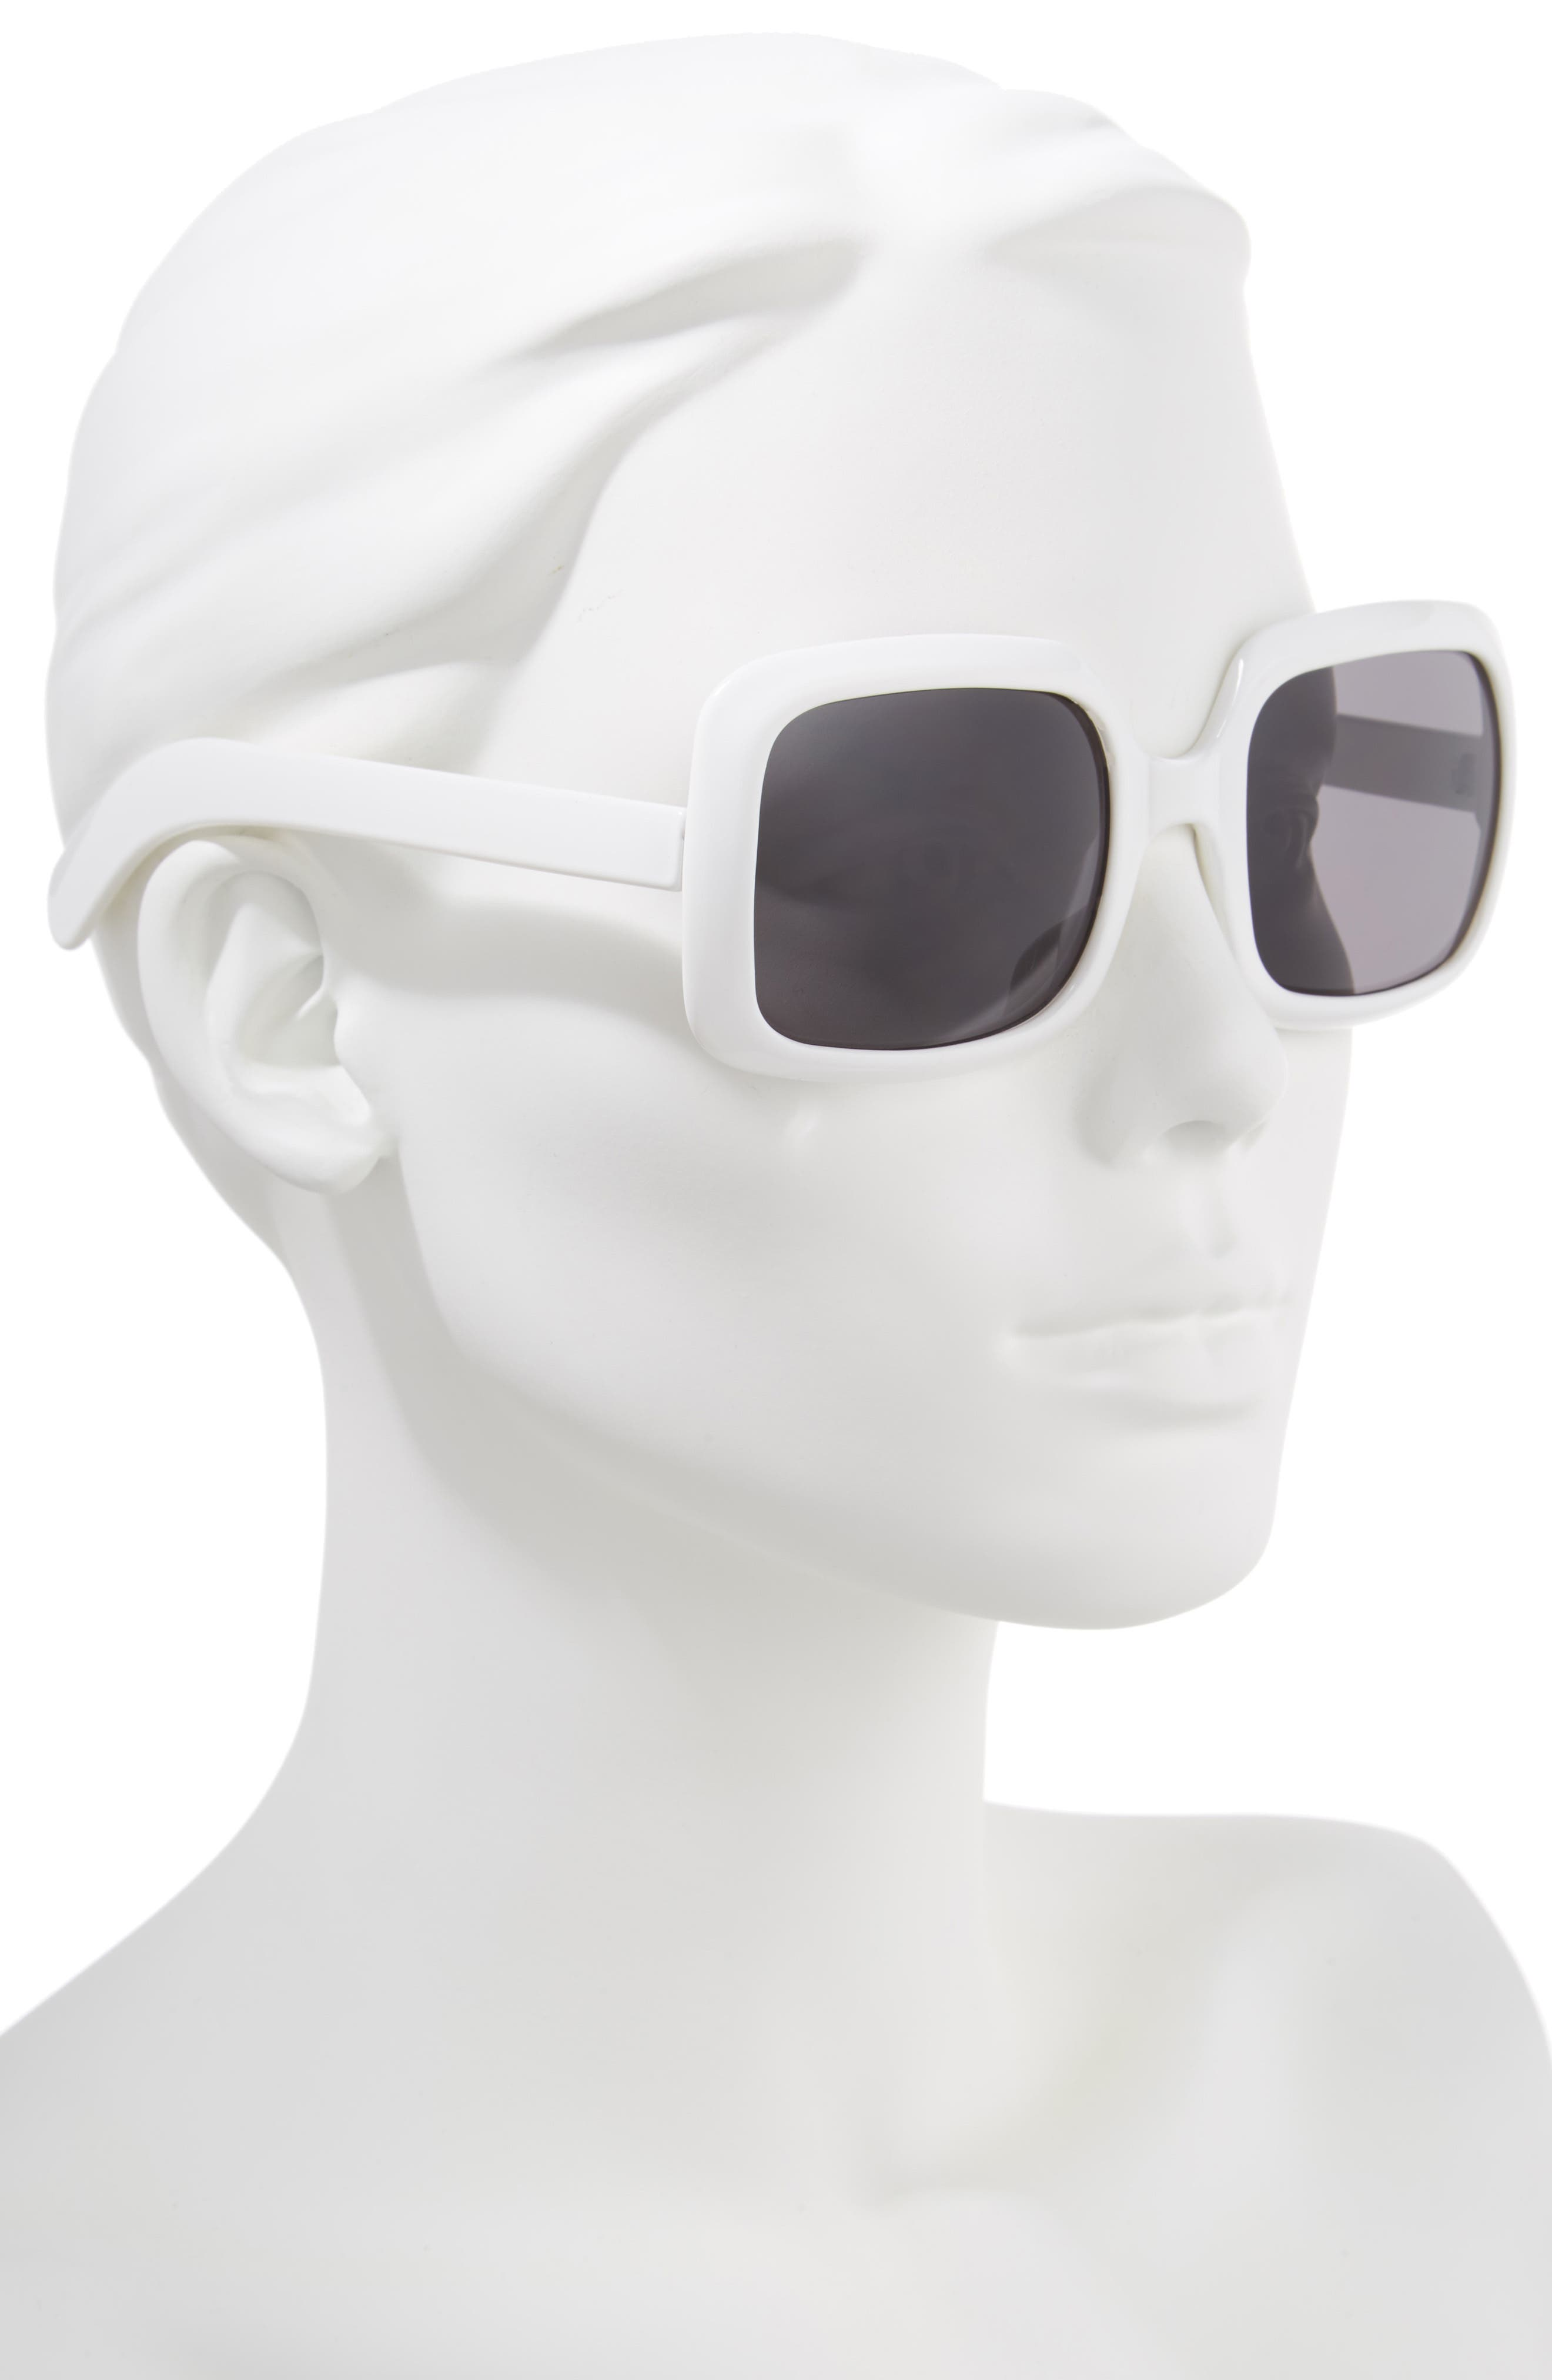 54mm Retro Square Sunglasses,                             Alternate thumbnail 2, color,                             White/ Black